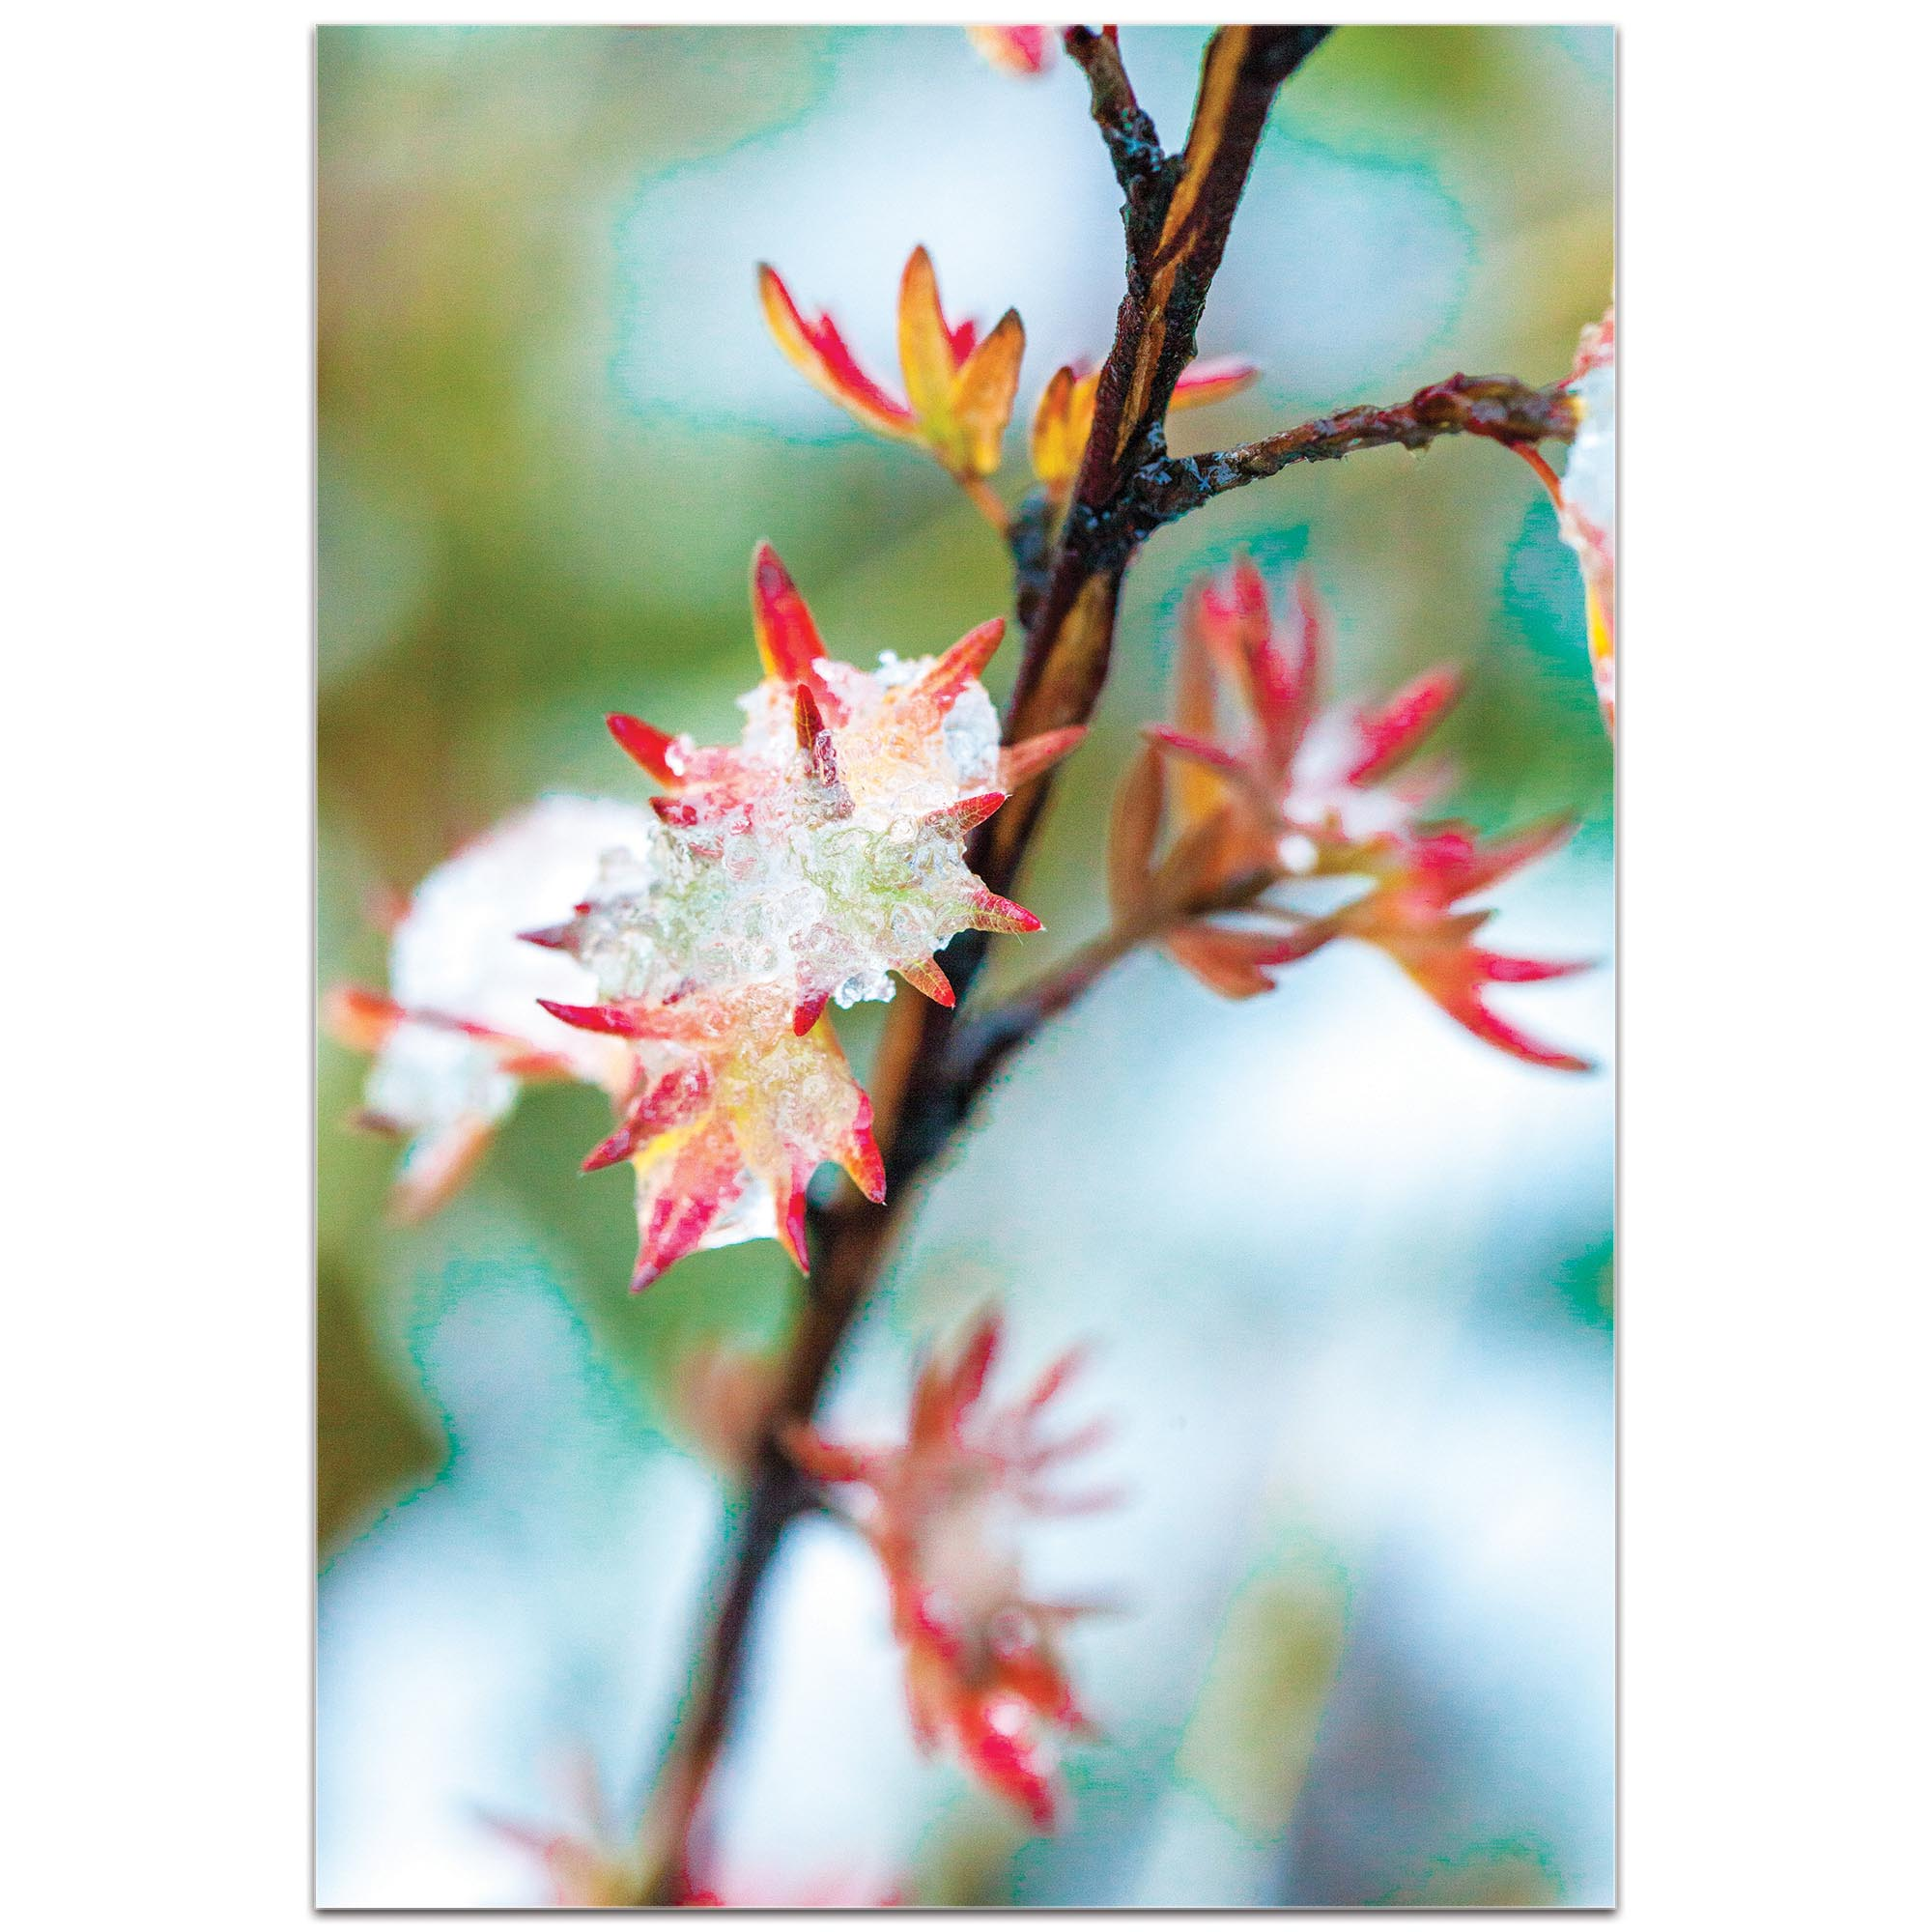 Nature Photography 'Icy Autumn' - Winter Blossom Art on Metal or Plexiglass - Image 2